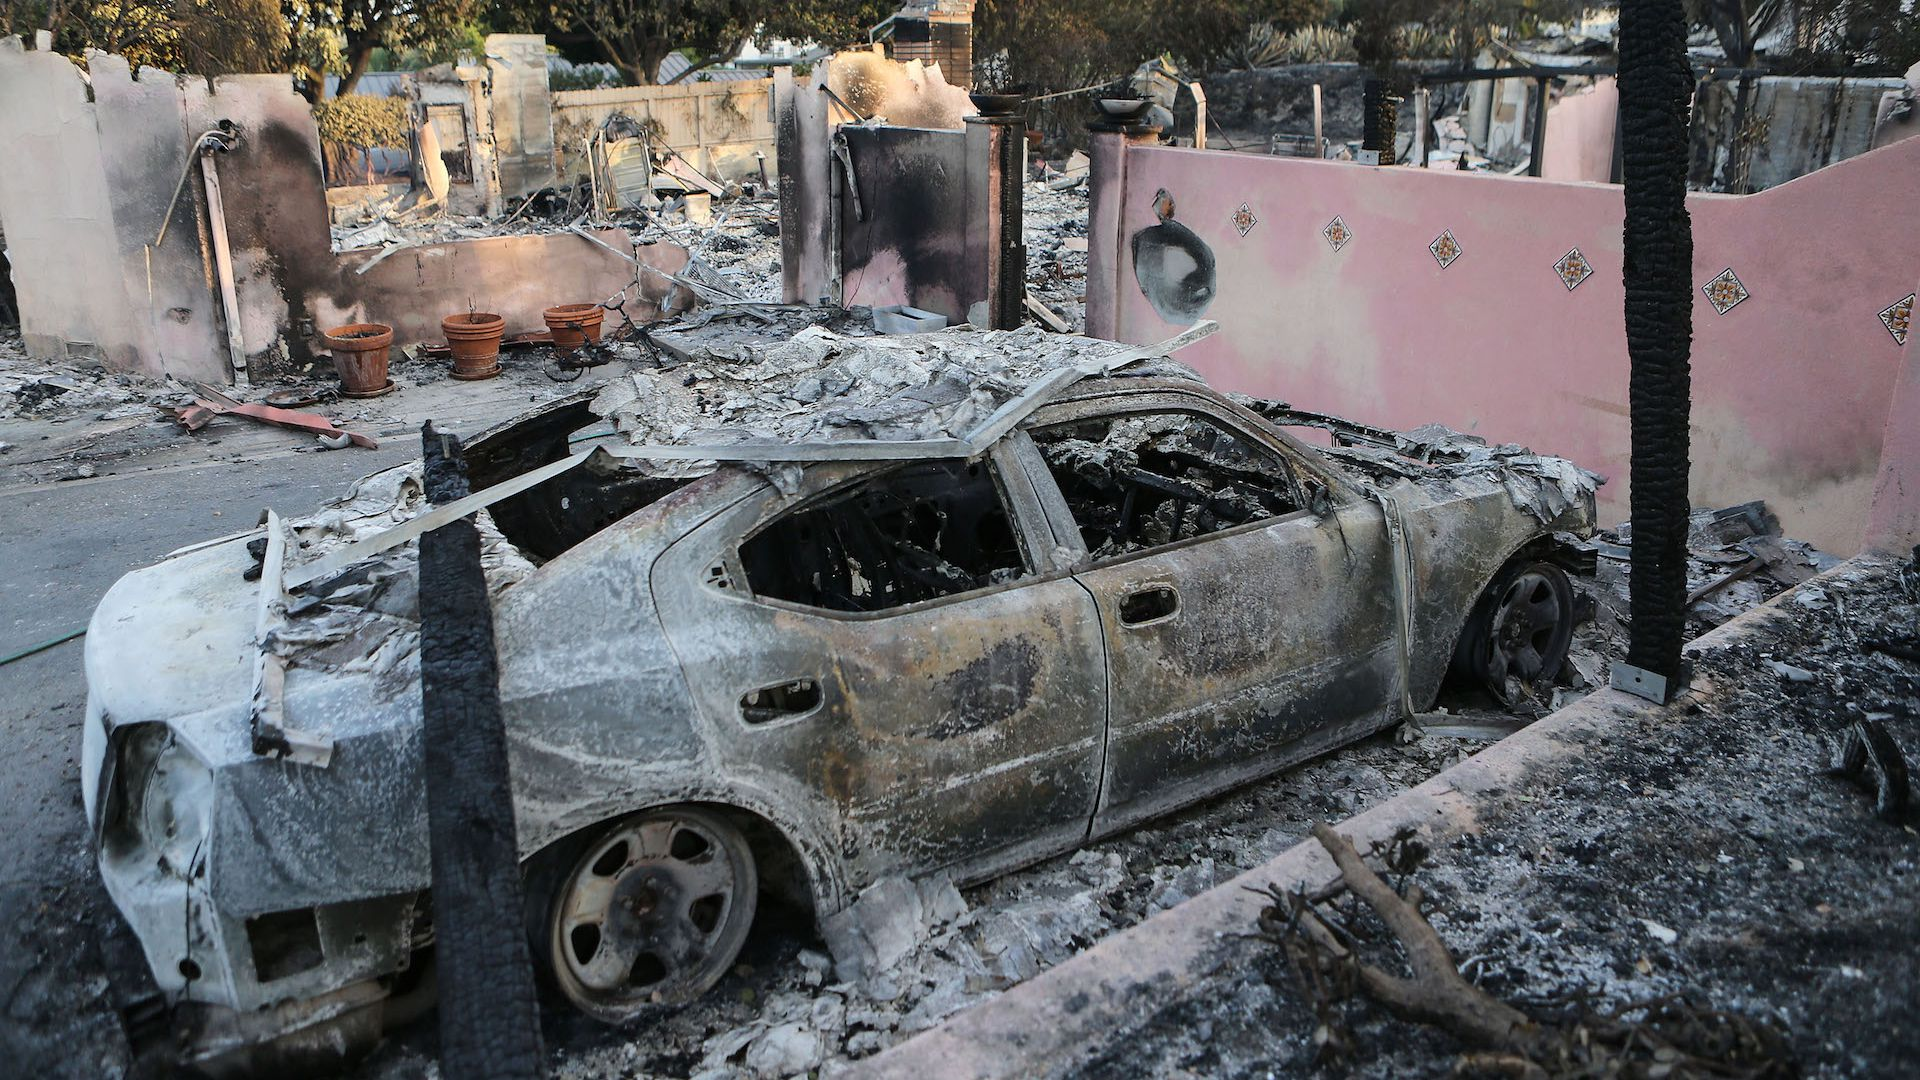 The remains of a destroyed car stand in front of a destroyed home in the aftermath of the Holiday Fire on July 7, 2018 in Goleta, California.